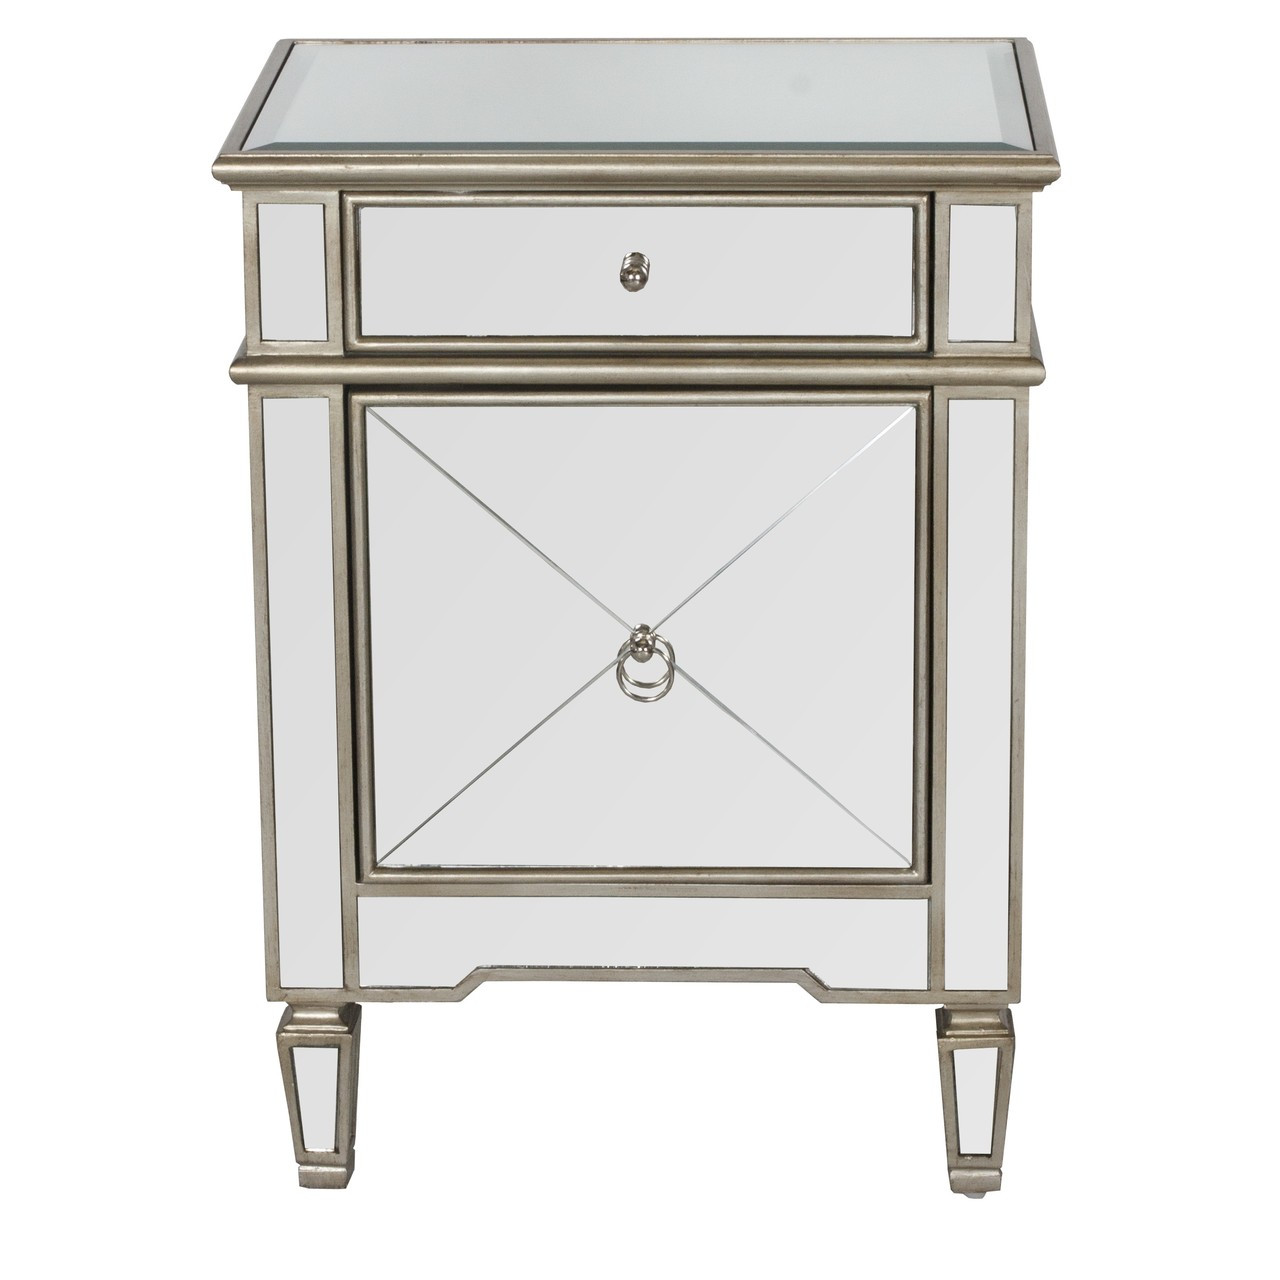 Worlds Away Claudette Mirrored Nightstand With Painted Silver Edge And Crosshatch Detailing